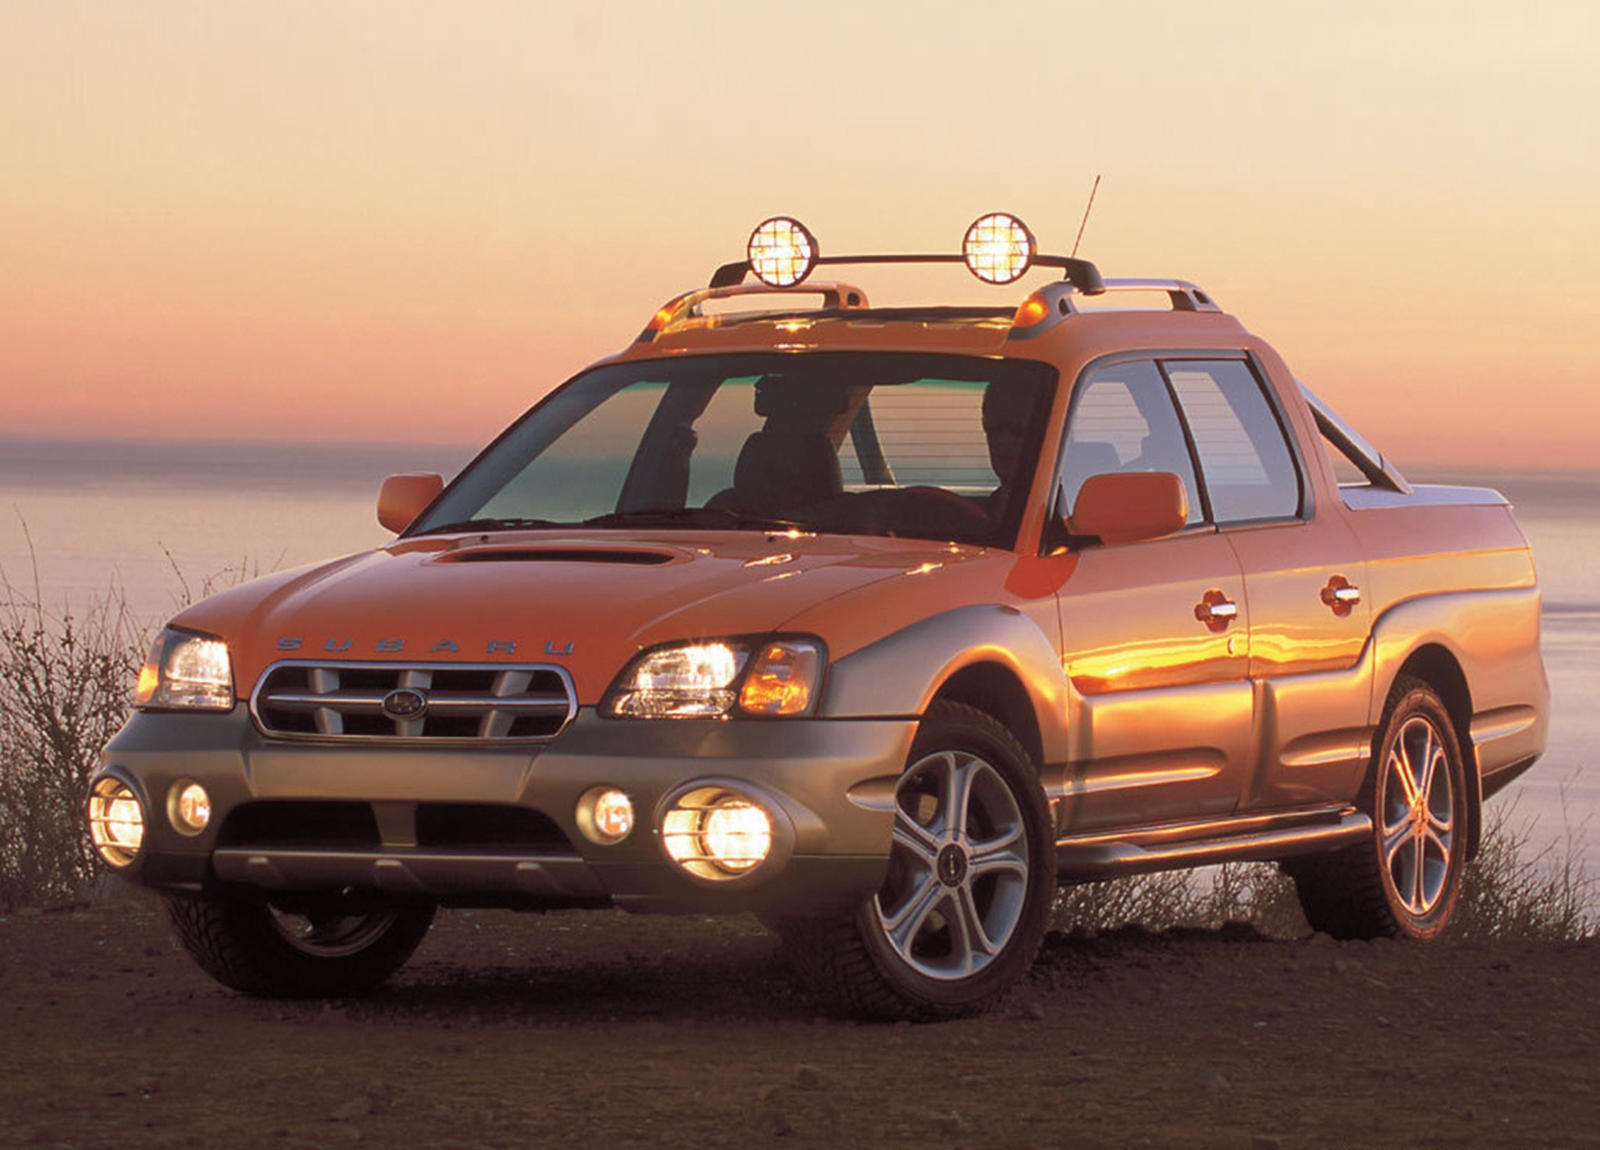 The Subaru Baja Is The Turbocharged Mini-Truck In A League Of Its Own |  CarBuzz